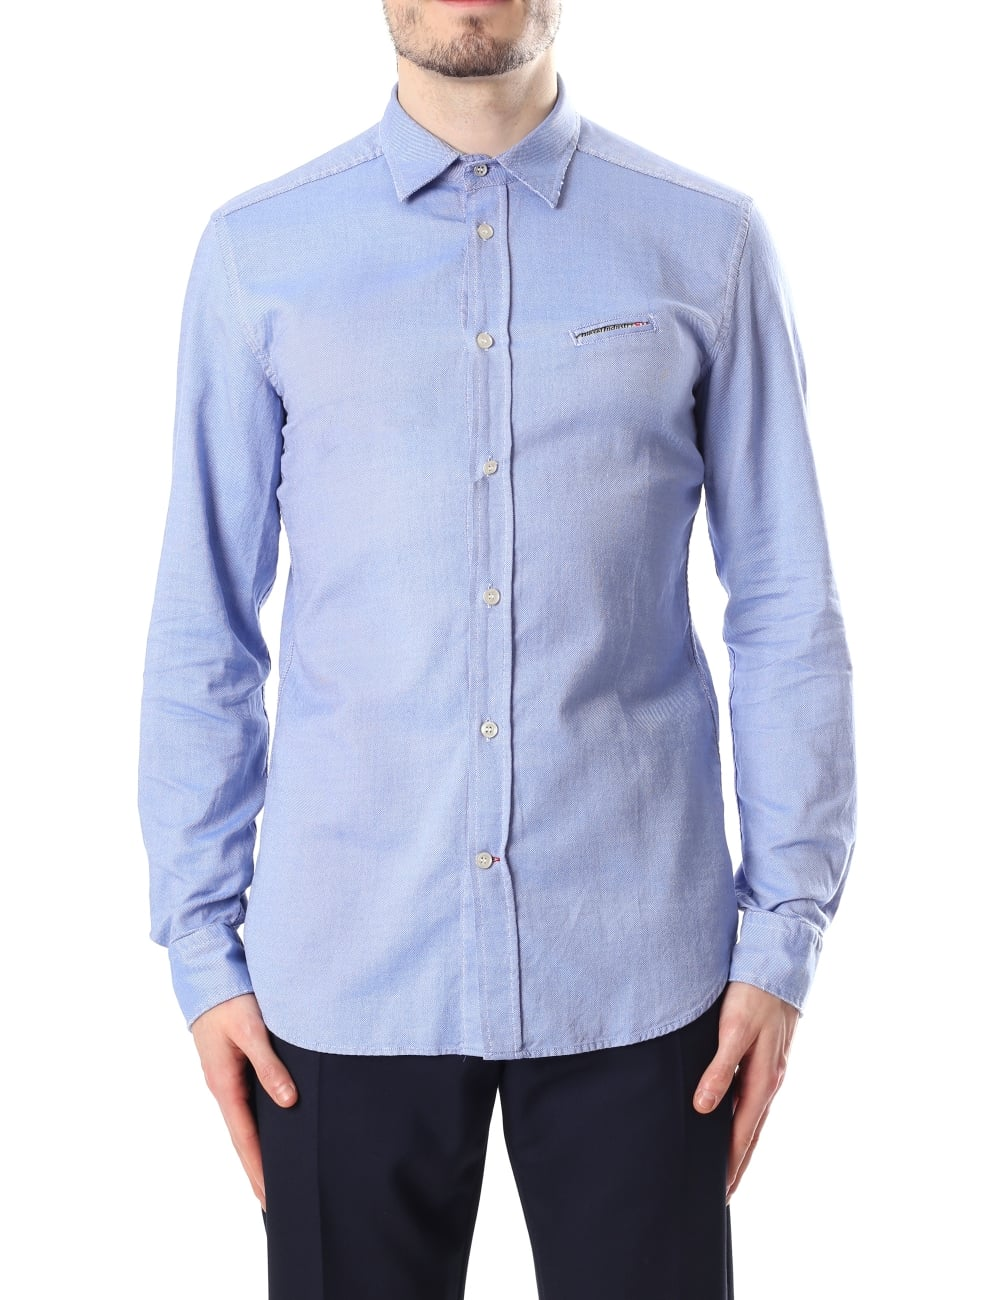 Diesel S Harras Men S Oxford Shirt